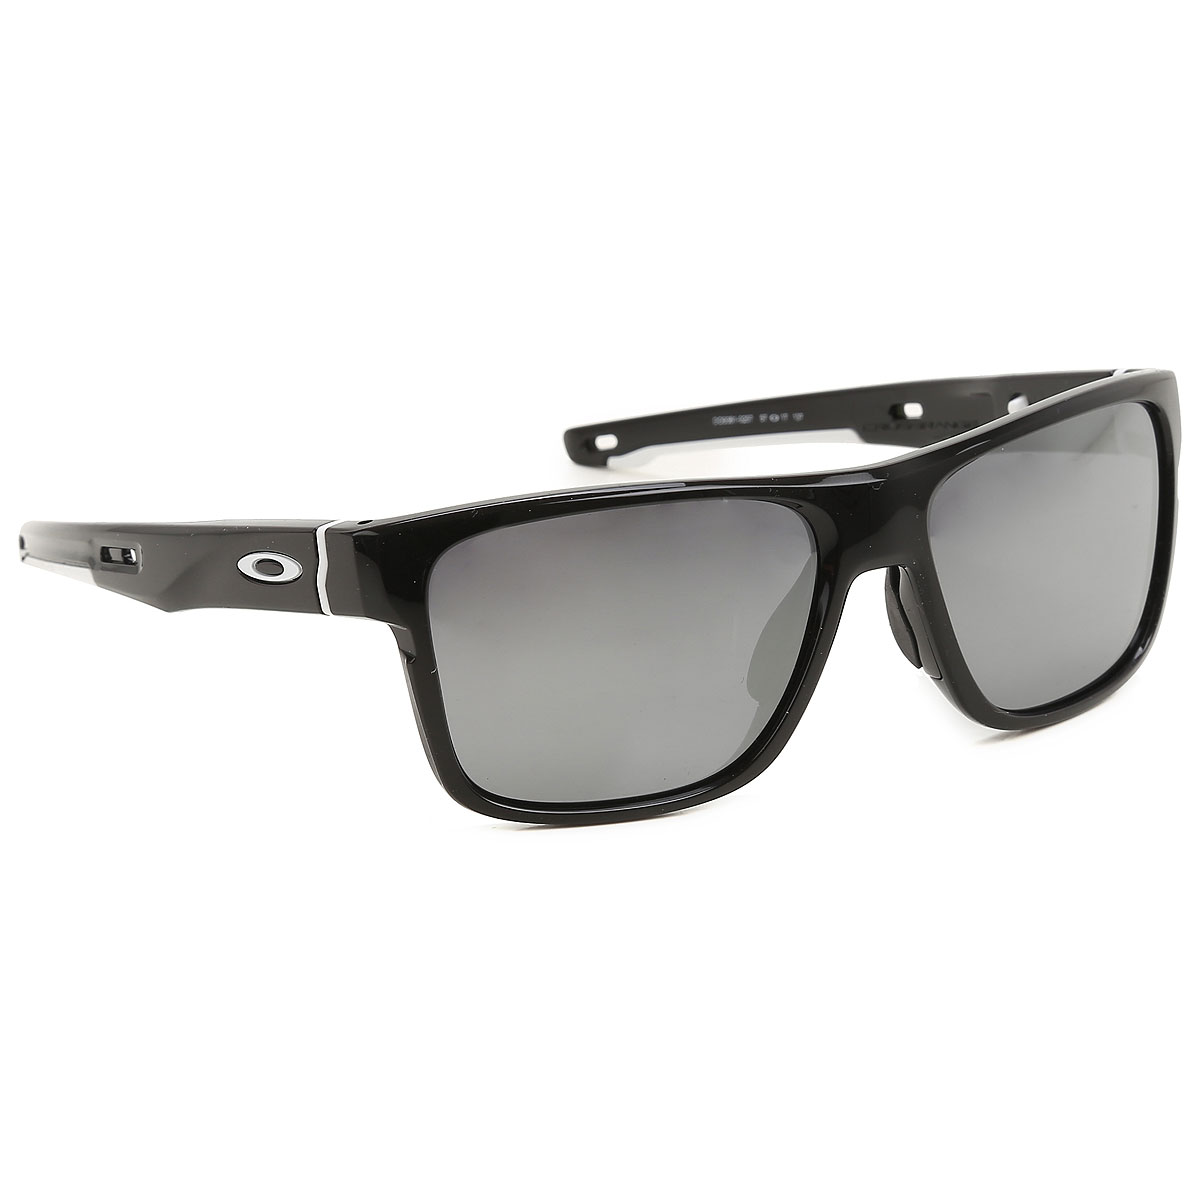 Oakley Sunglasses On Sale, Black, 2021 from Oakley